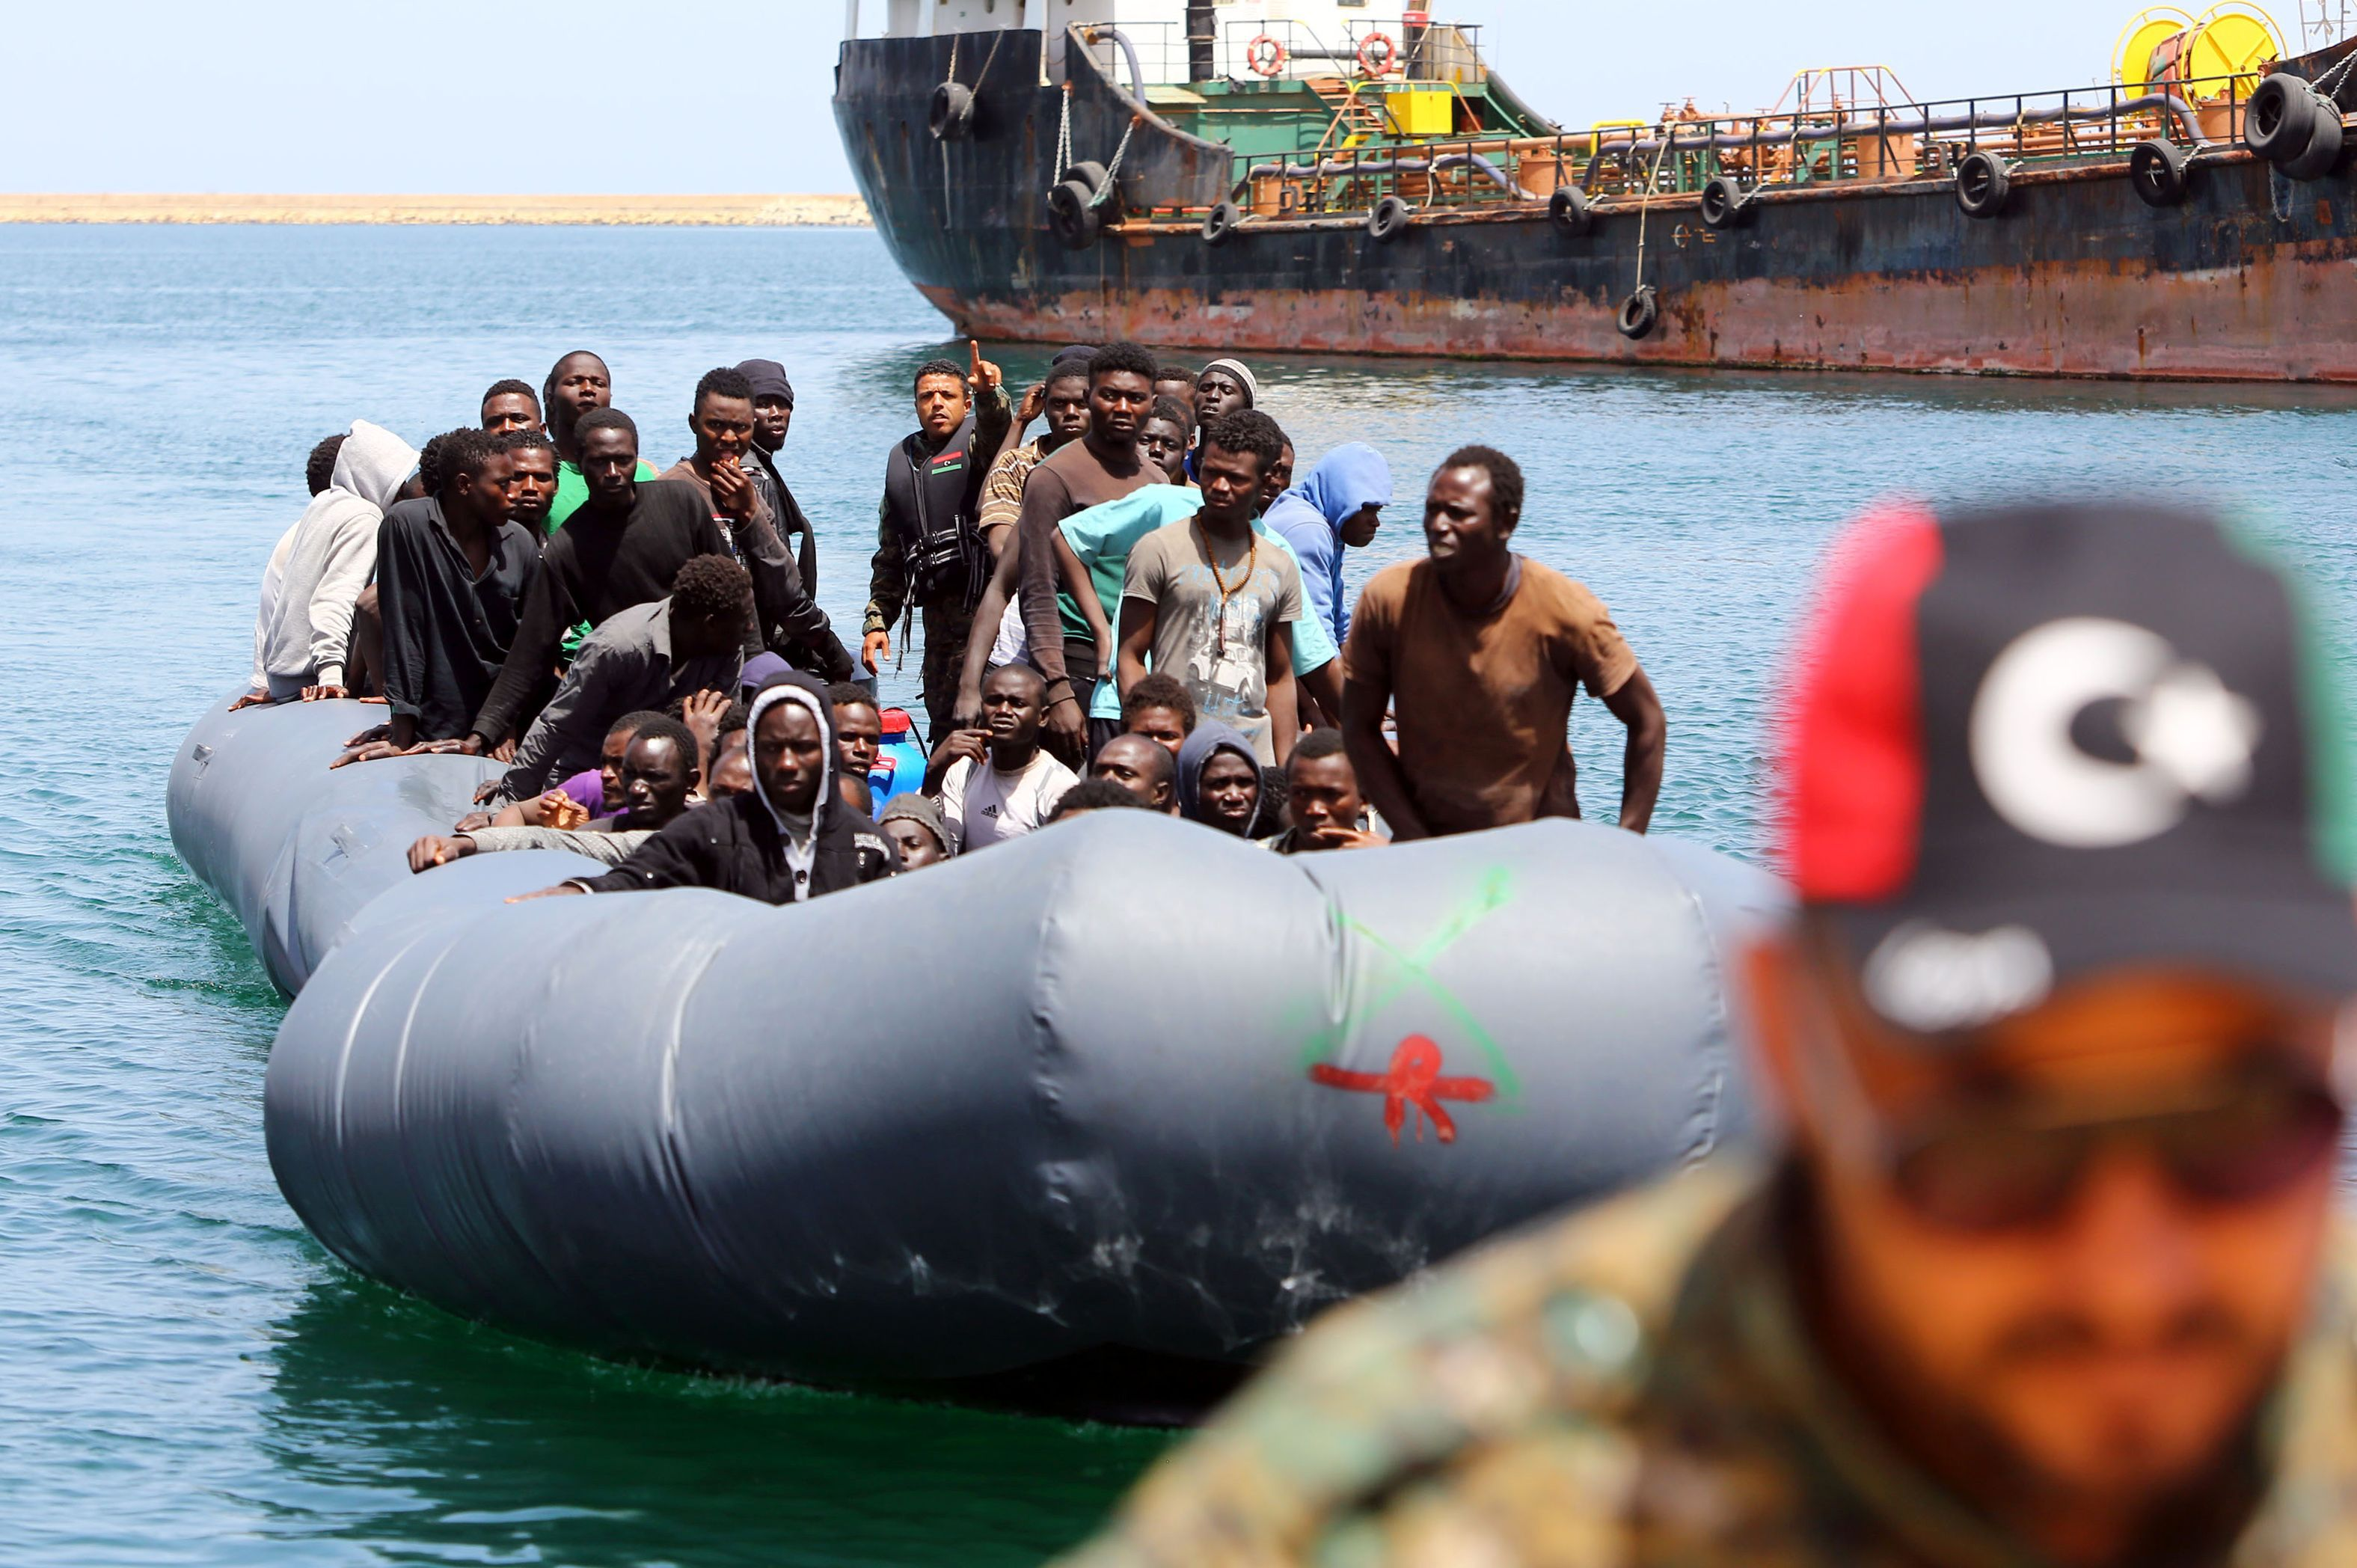 TOPSHOT - Illegal migrants, who were rescued by the Libyan coastguard in the Mediterranean Sea off the Libyan coast, arrive at the naval base in the capital Tripoli on May 6, 2017. / AFP PHOTO / MAHMUD TURKIA / TT / kod 444